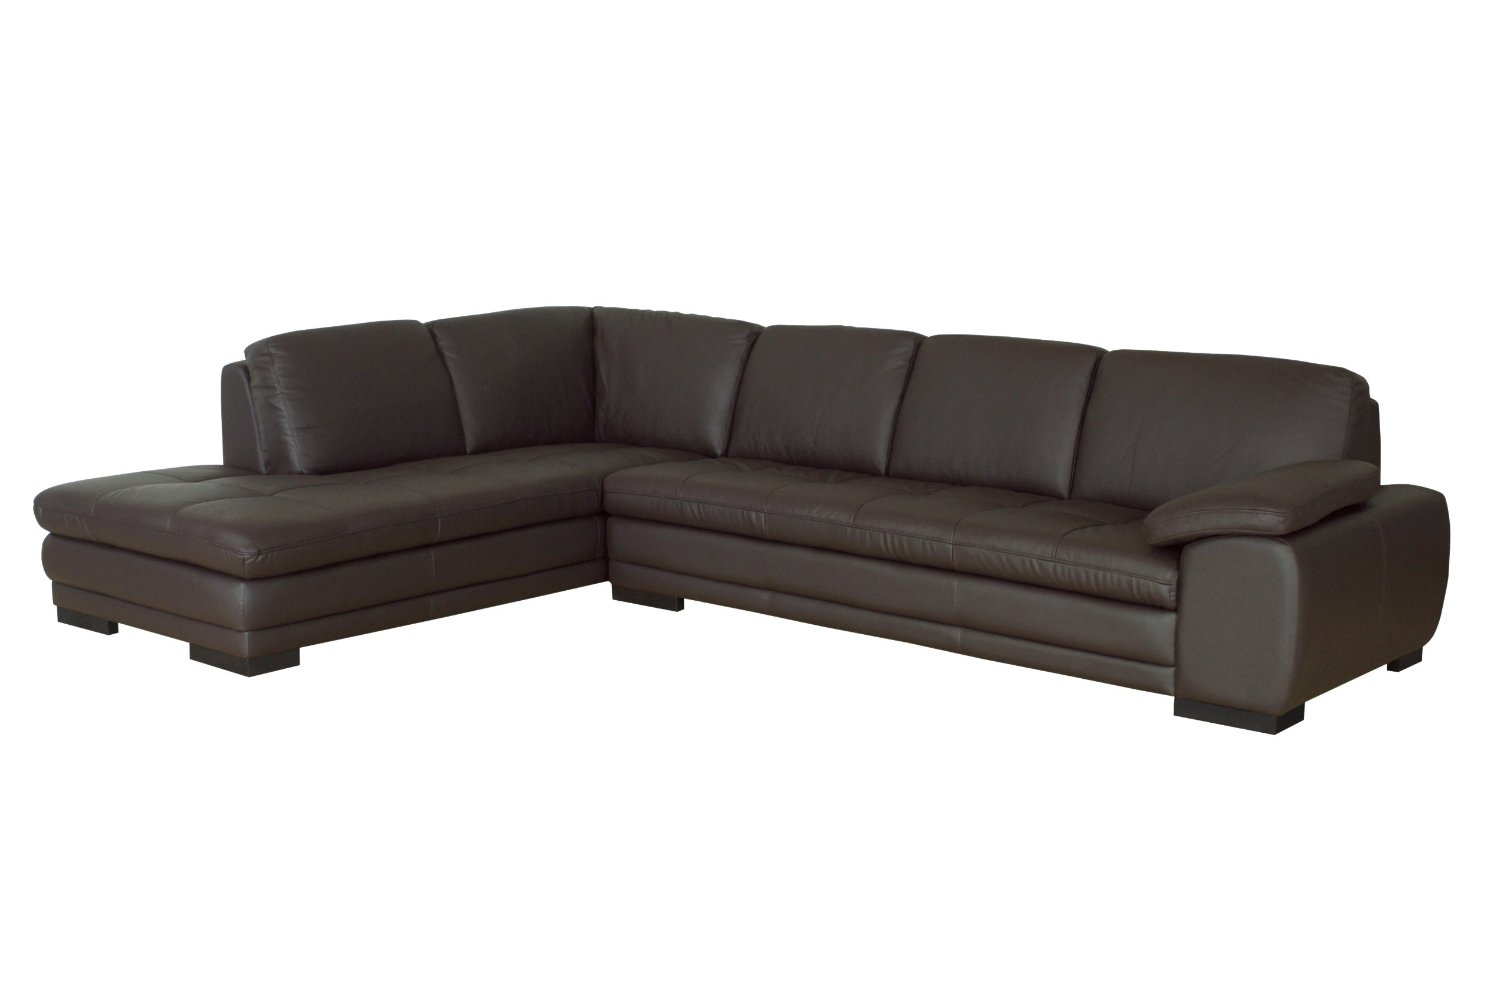 Dark Brown Leather Sectional Sofa 1500 x 1000